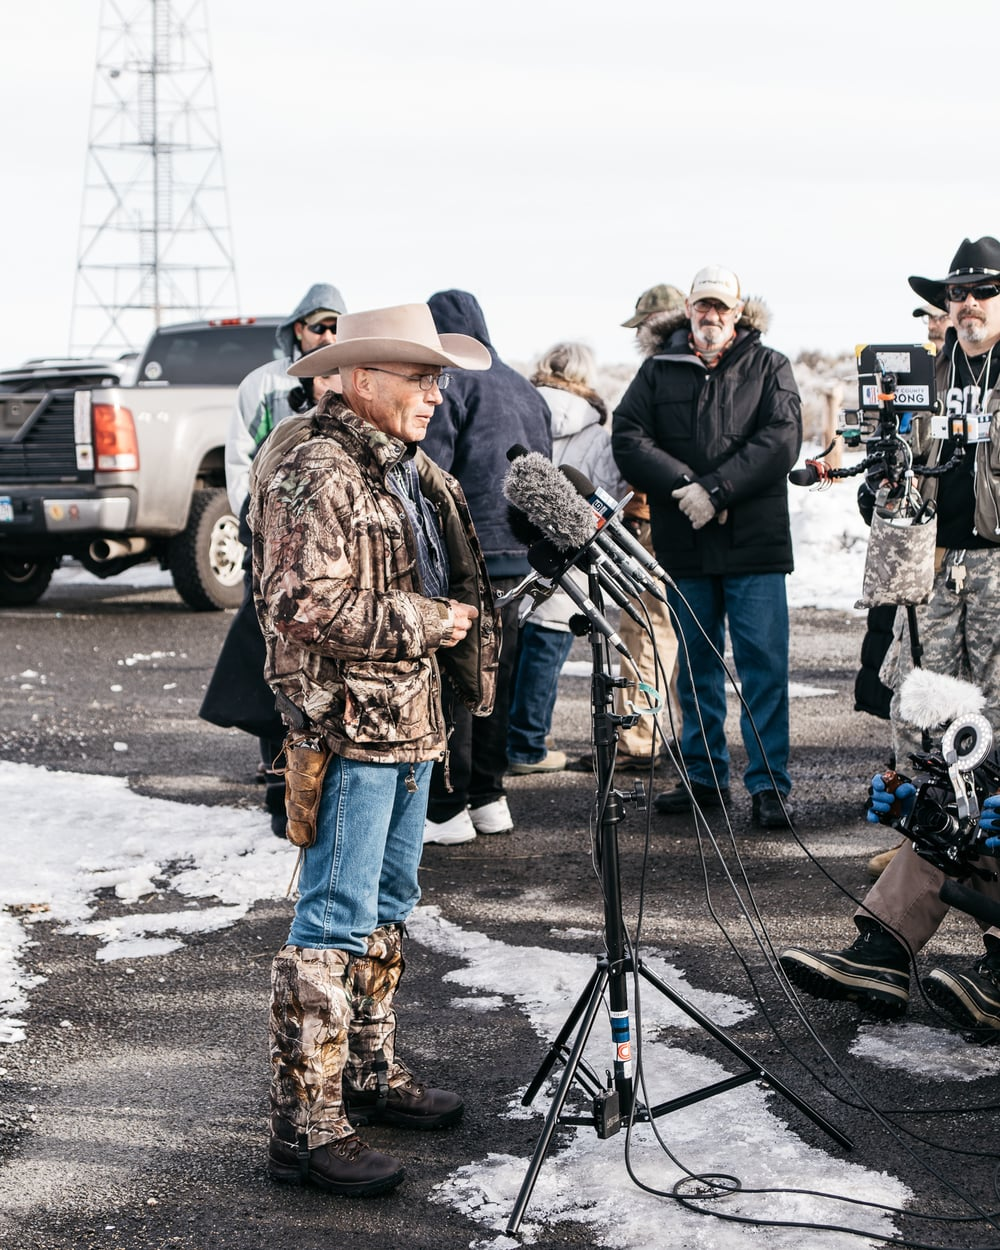 burns_oregon_standoff_672.jpg